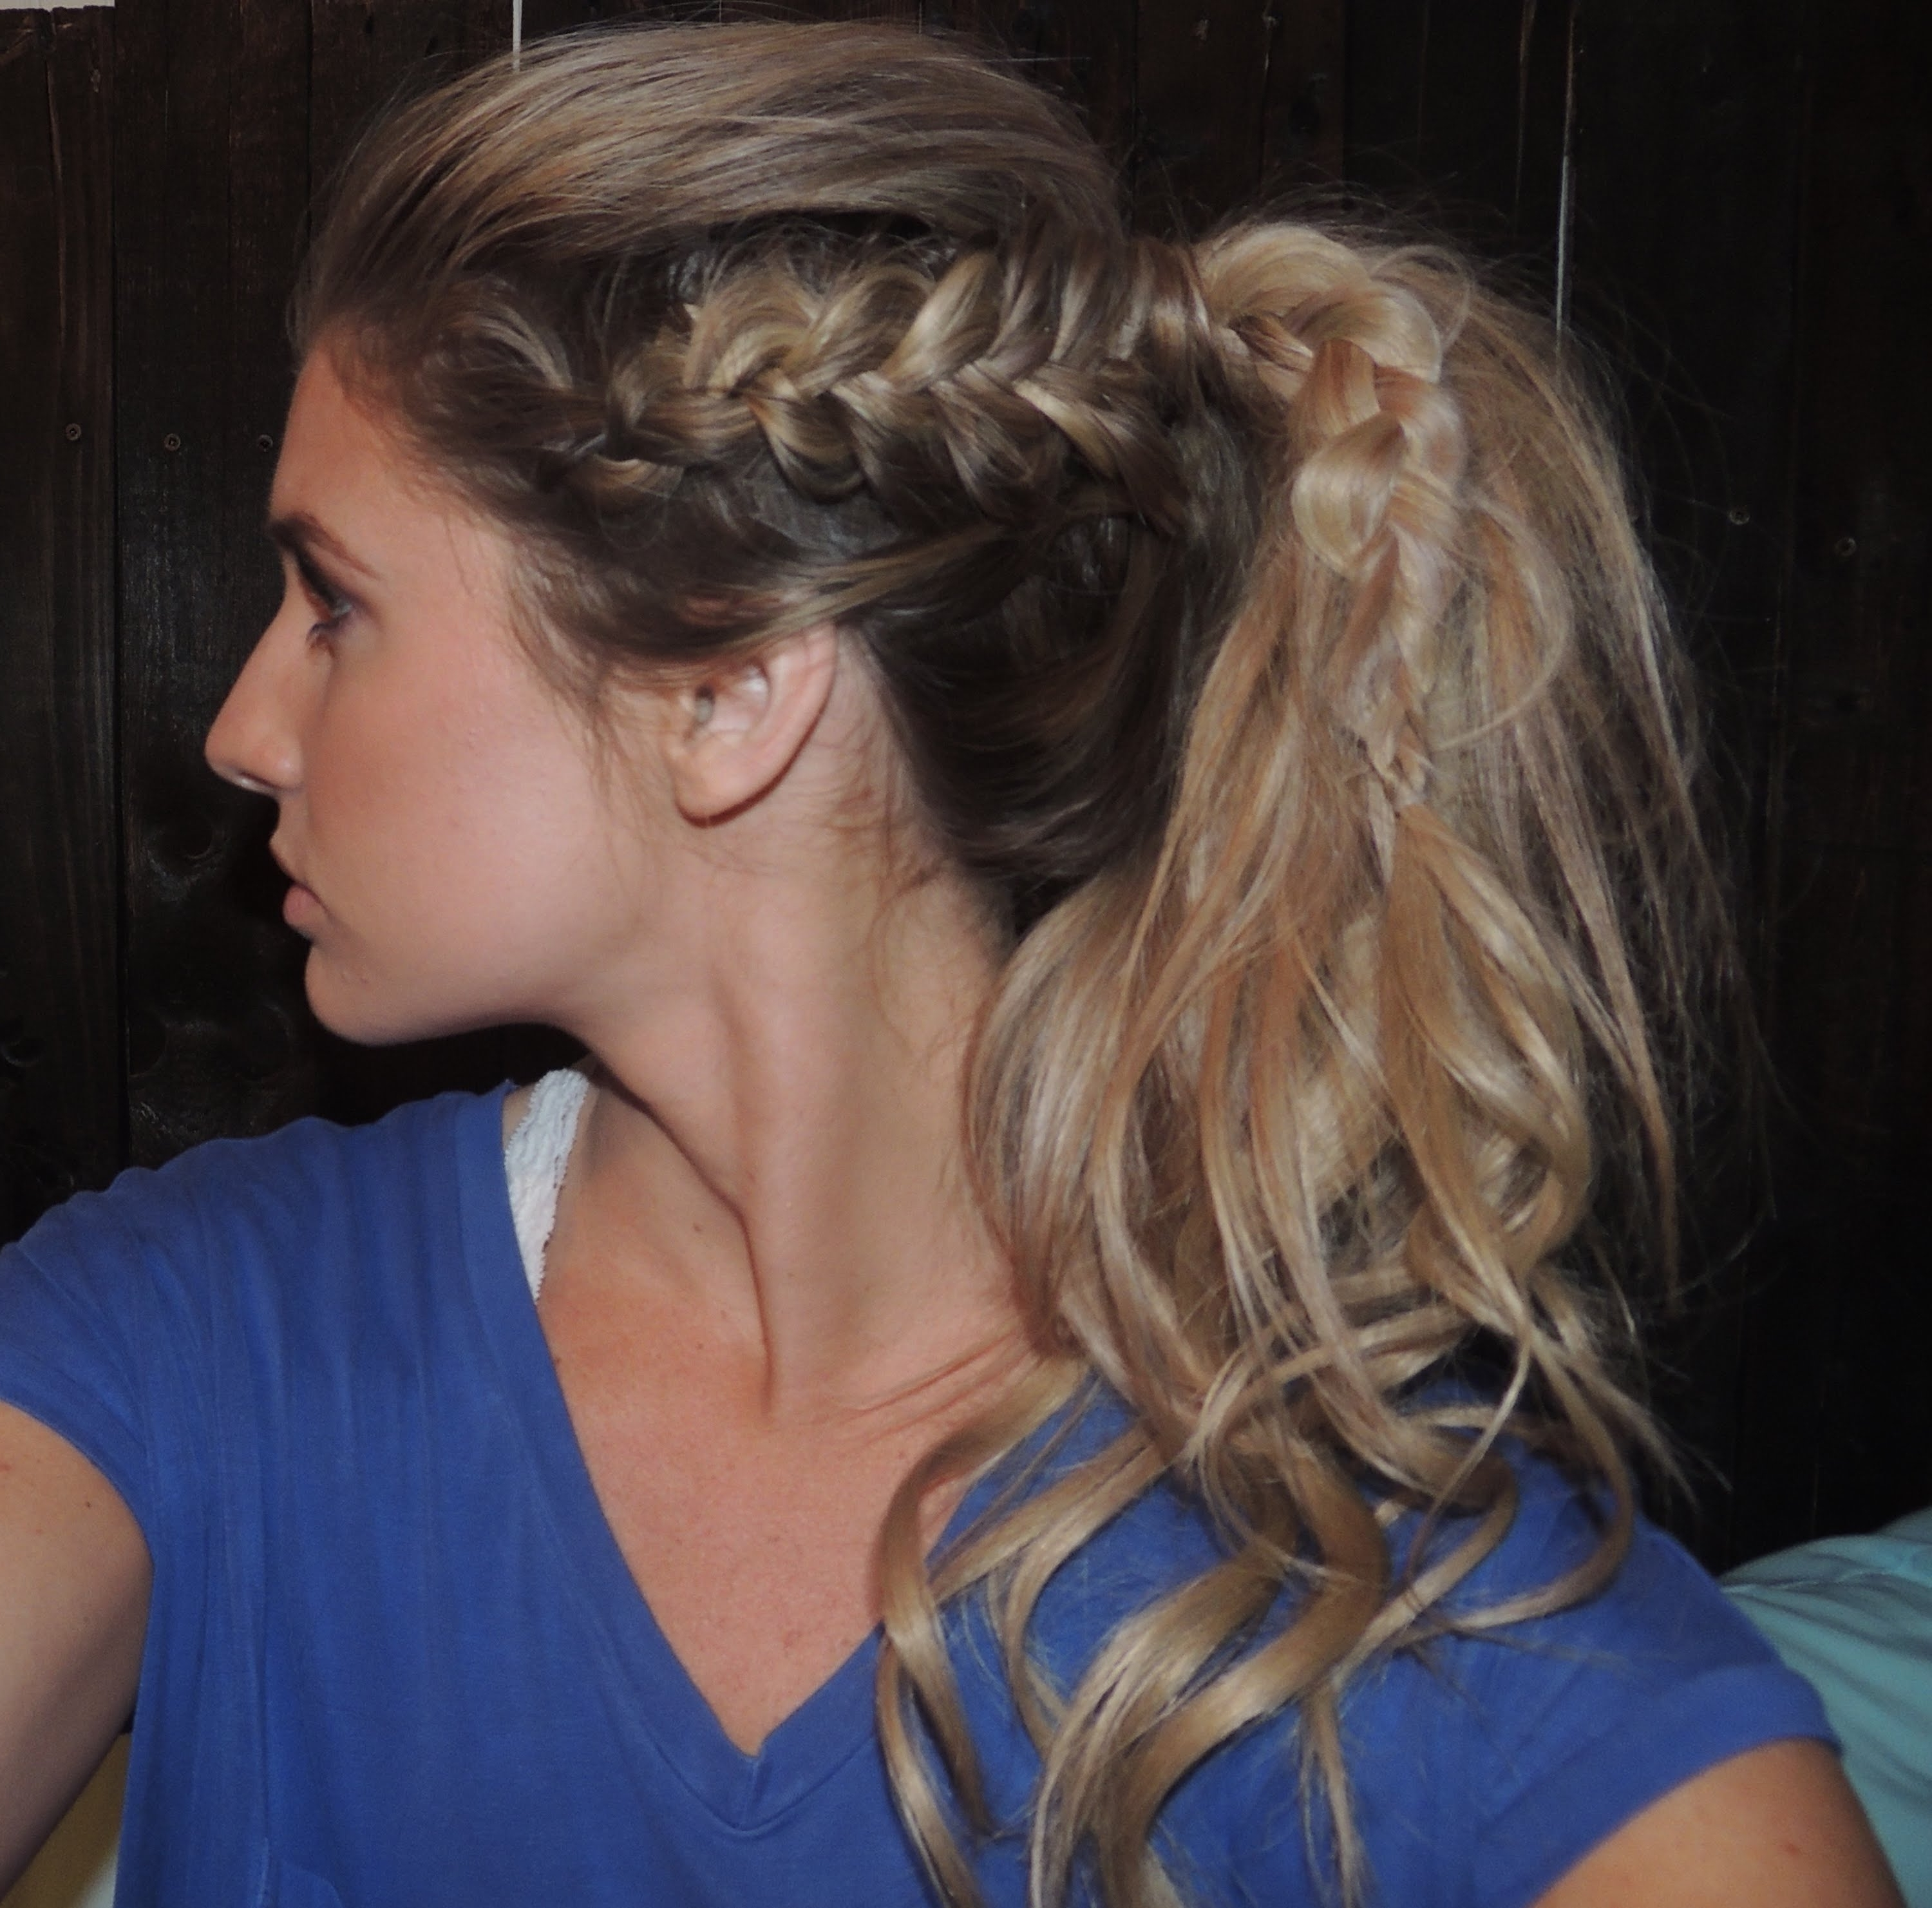 How To Tutorial On Side Dutch Braids To A Ponytail – Youtube Throughout Well Known Side Ponytail Hairstyles With Braid (View 8 of 20)